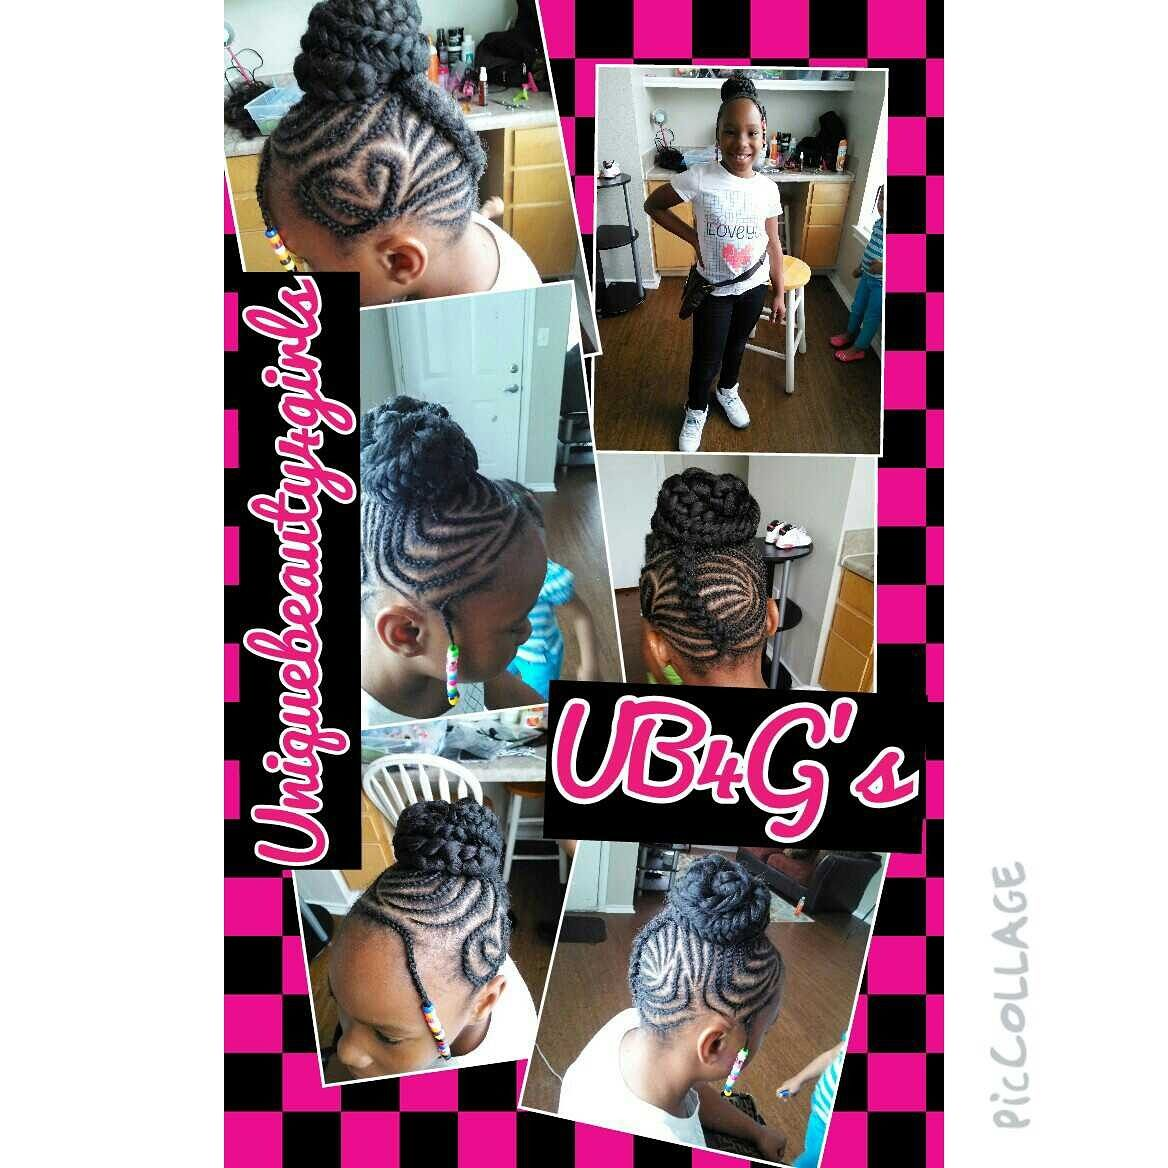 Come join UB4G's Book your spots today am located in the dallas area 2149627397